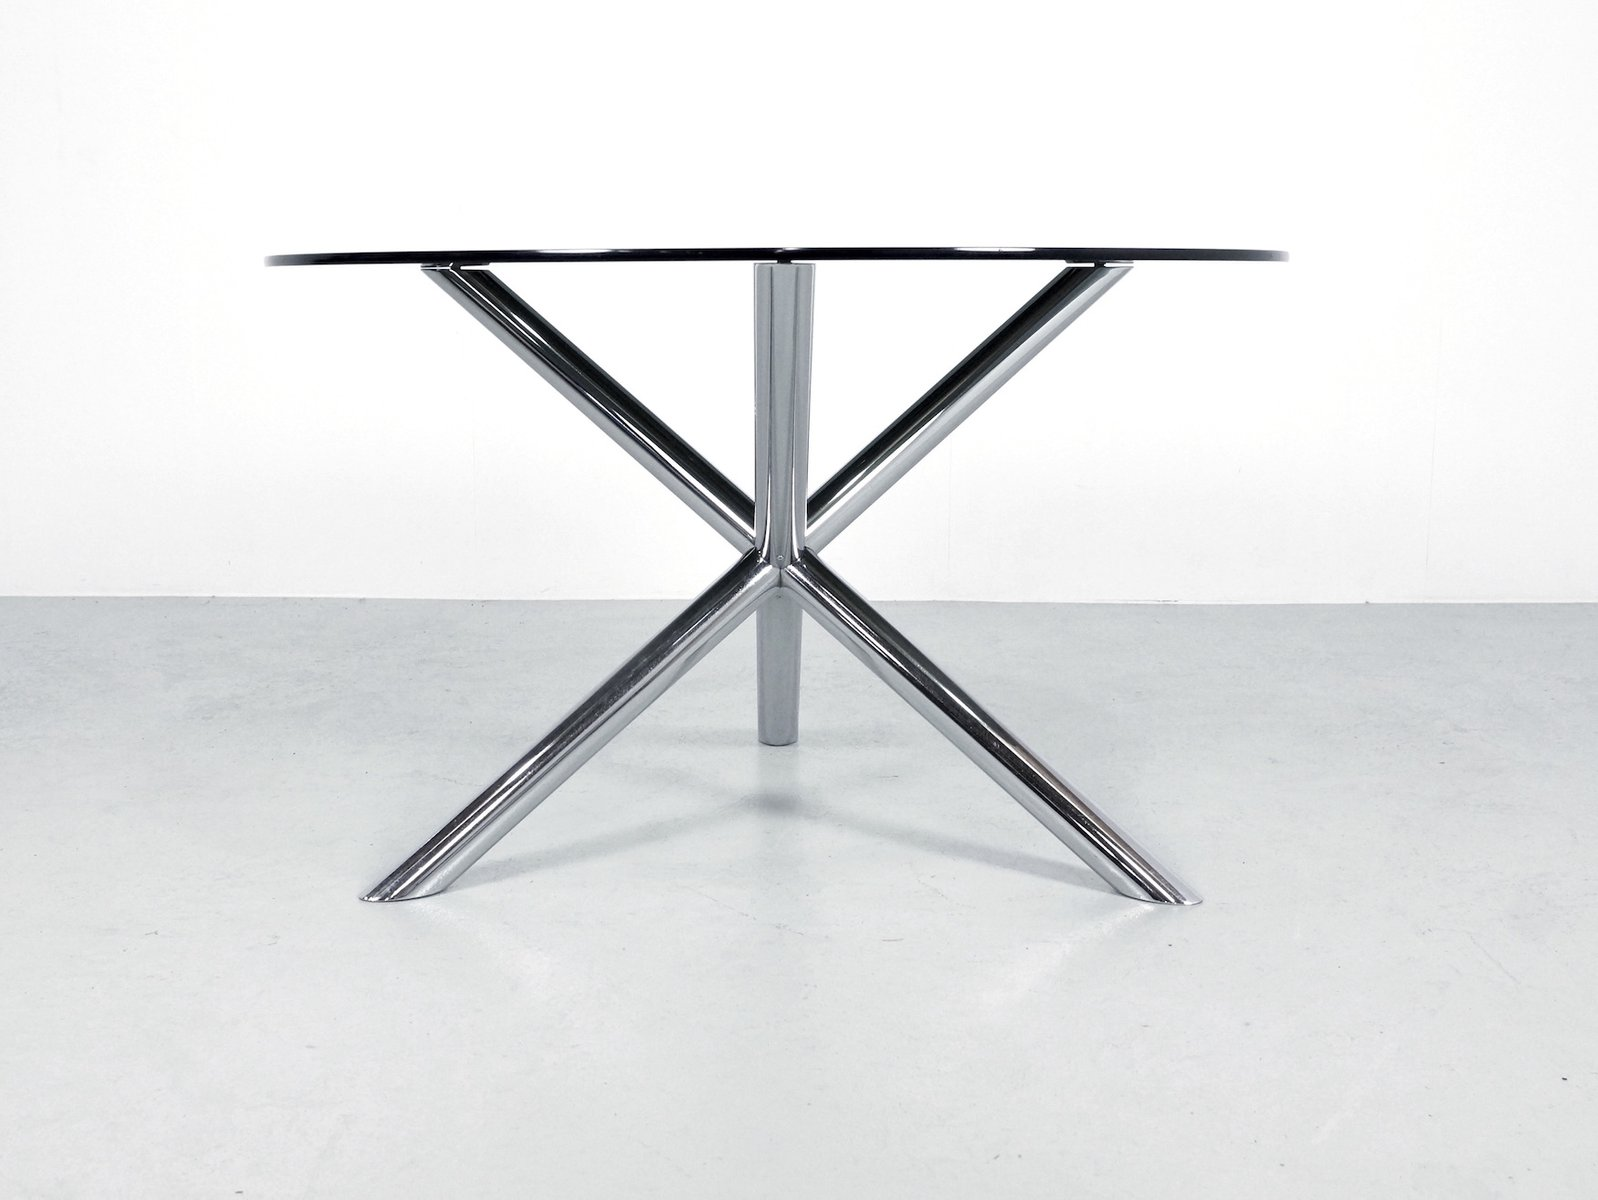 Dining Table In Chrome And Smoked Glass By Roche Bobois S For Sale At  Pamono With Roche Bobois Salerno.